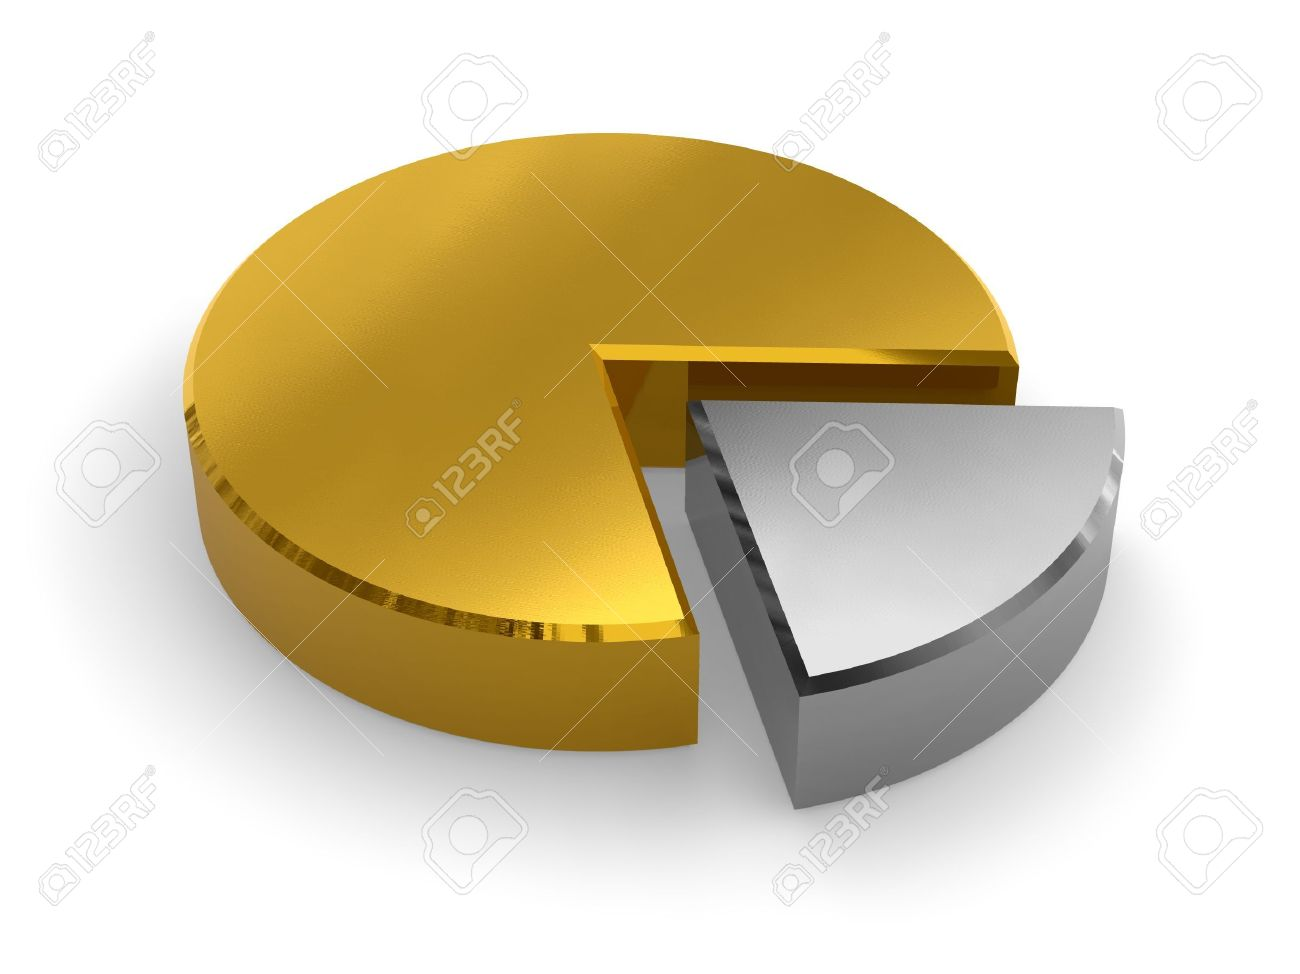 Golden pie chart stock photo picture and royalty free image image golden pie chart stock photo 4795579 nvjuhfo Choice Image